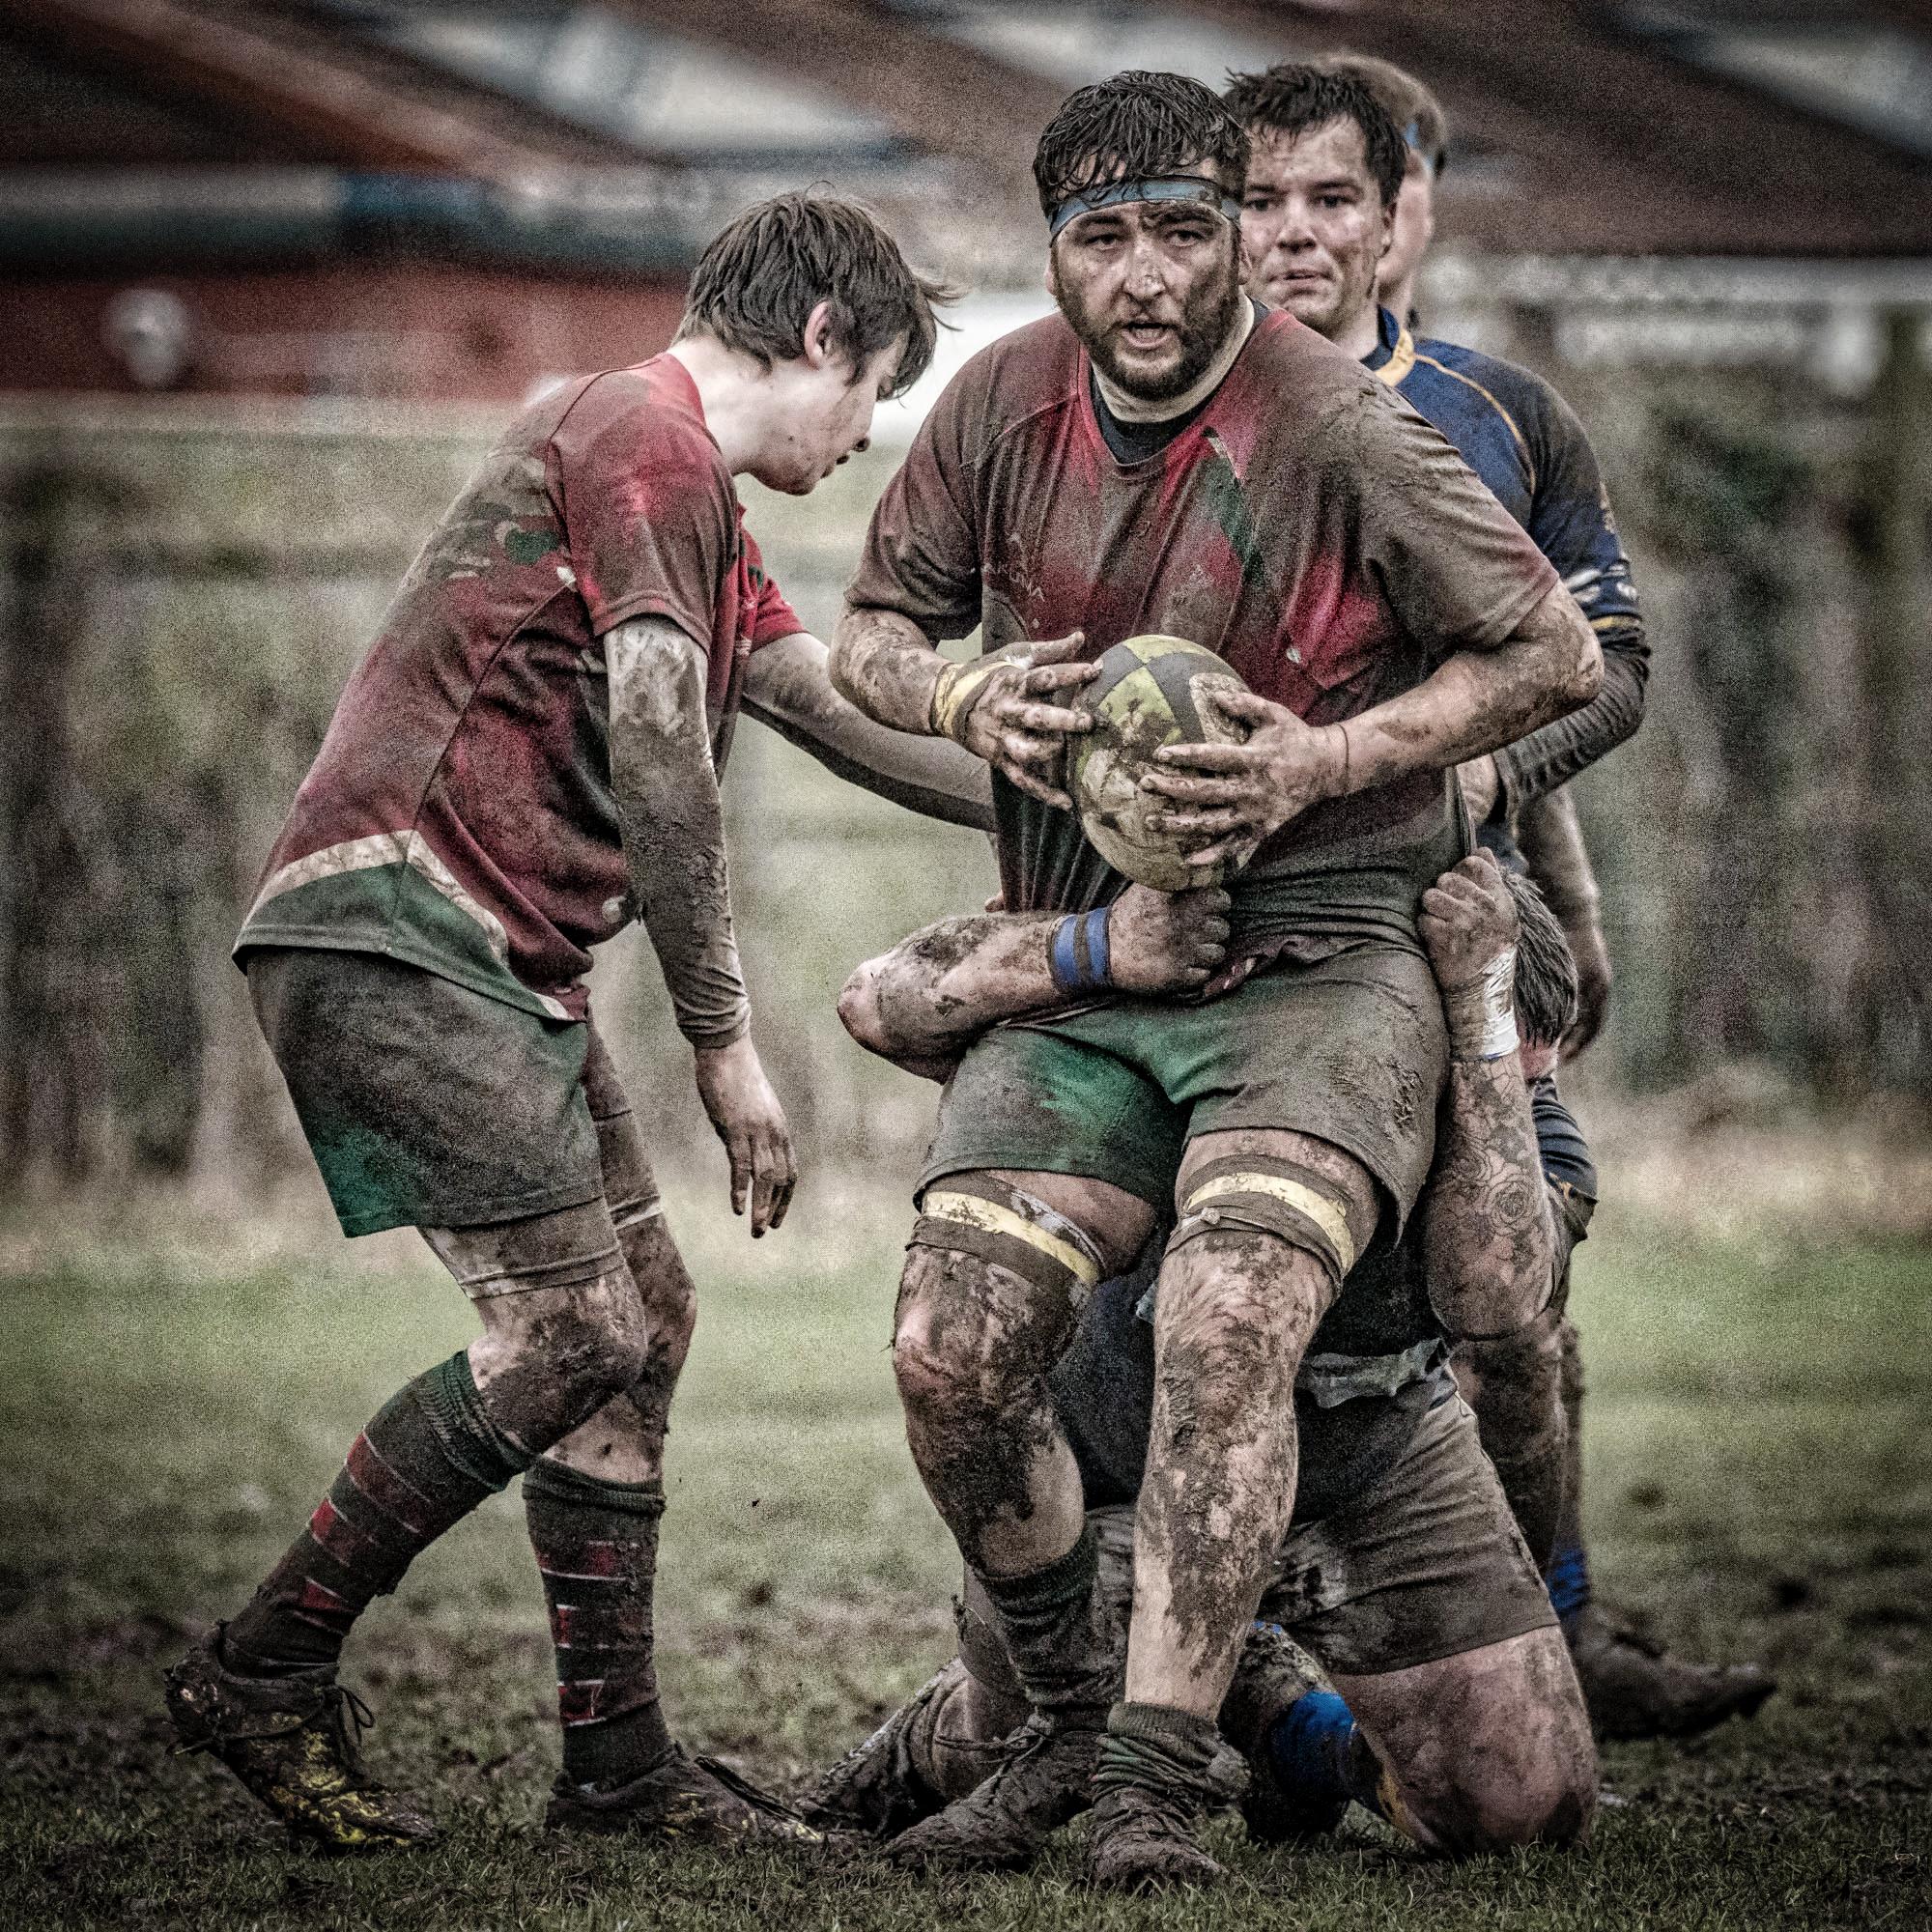 Shot from a second team game on an adjoining pitch gives a good idea of the conditions